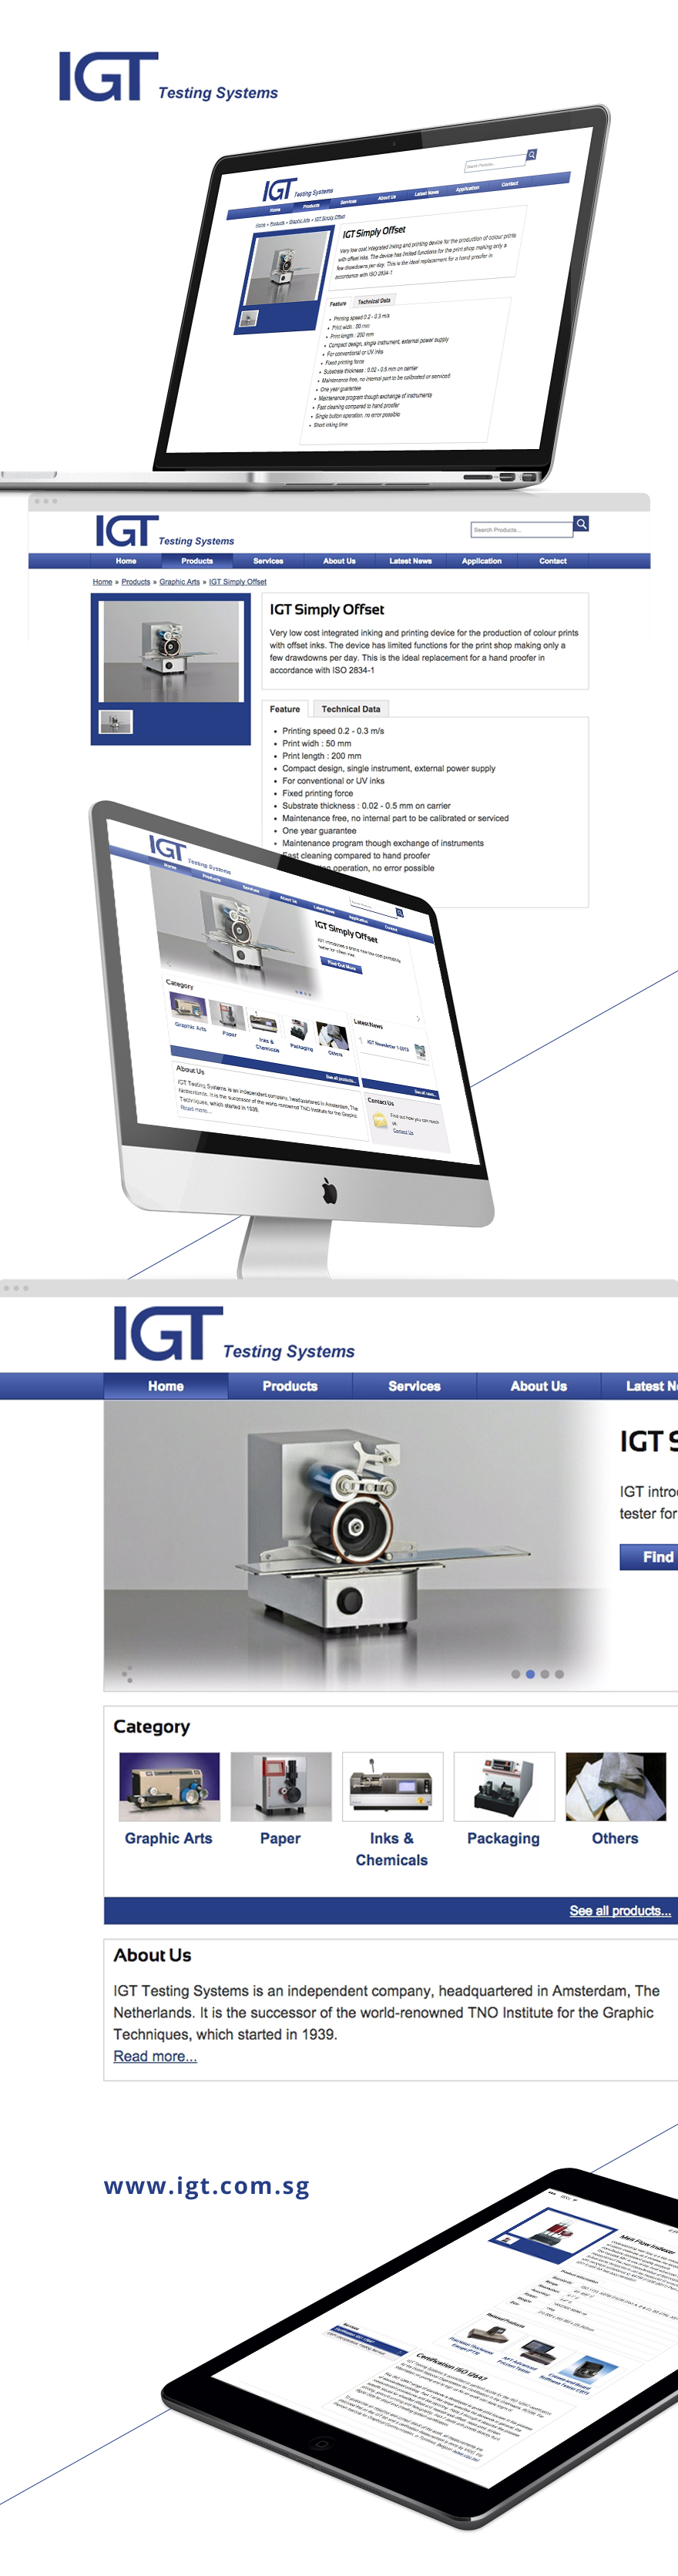 Projects - IGT Testing Systems